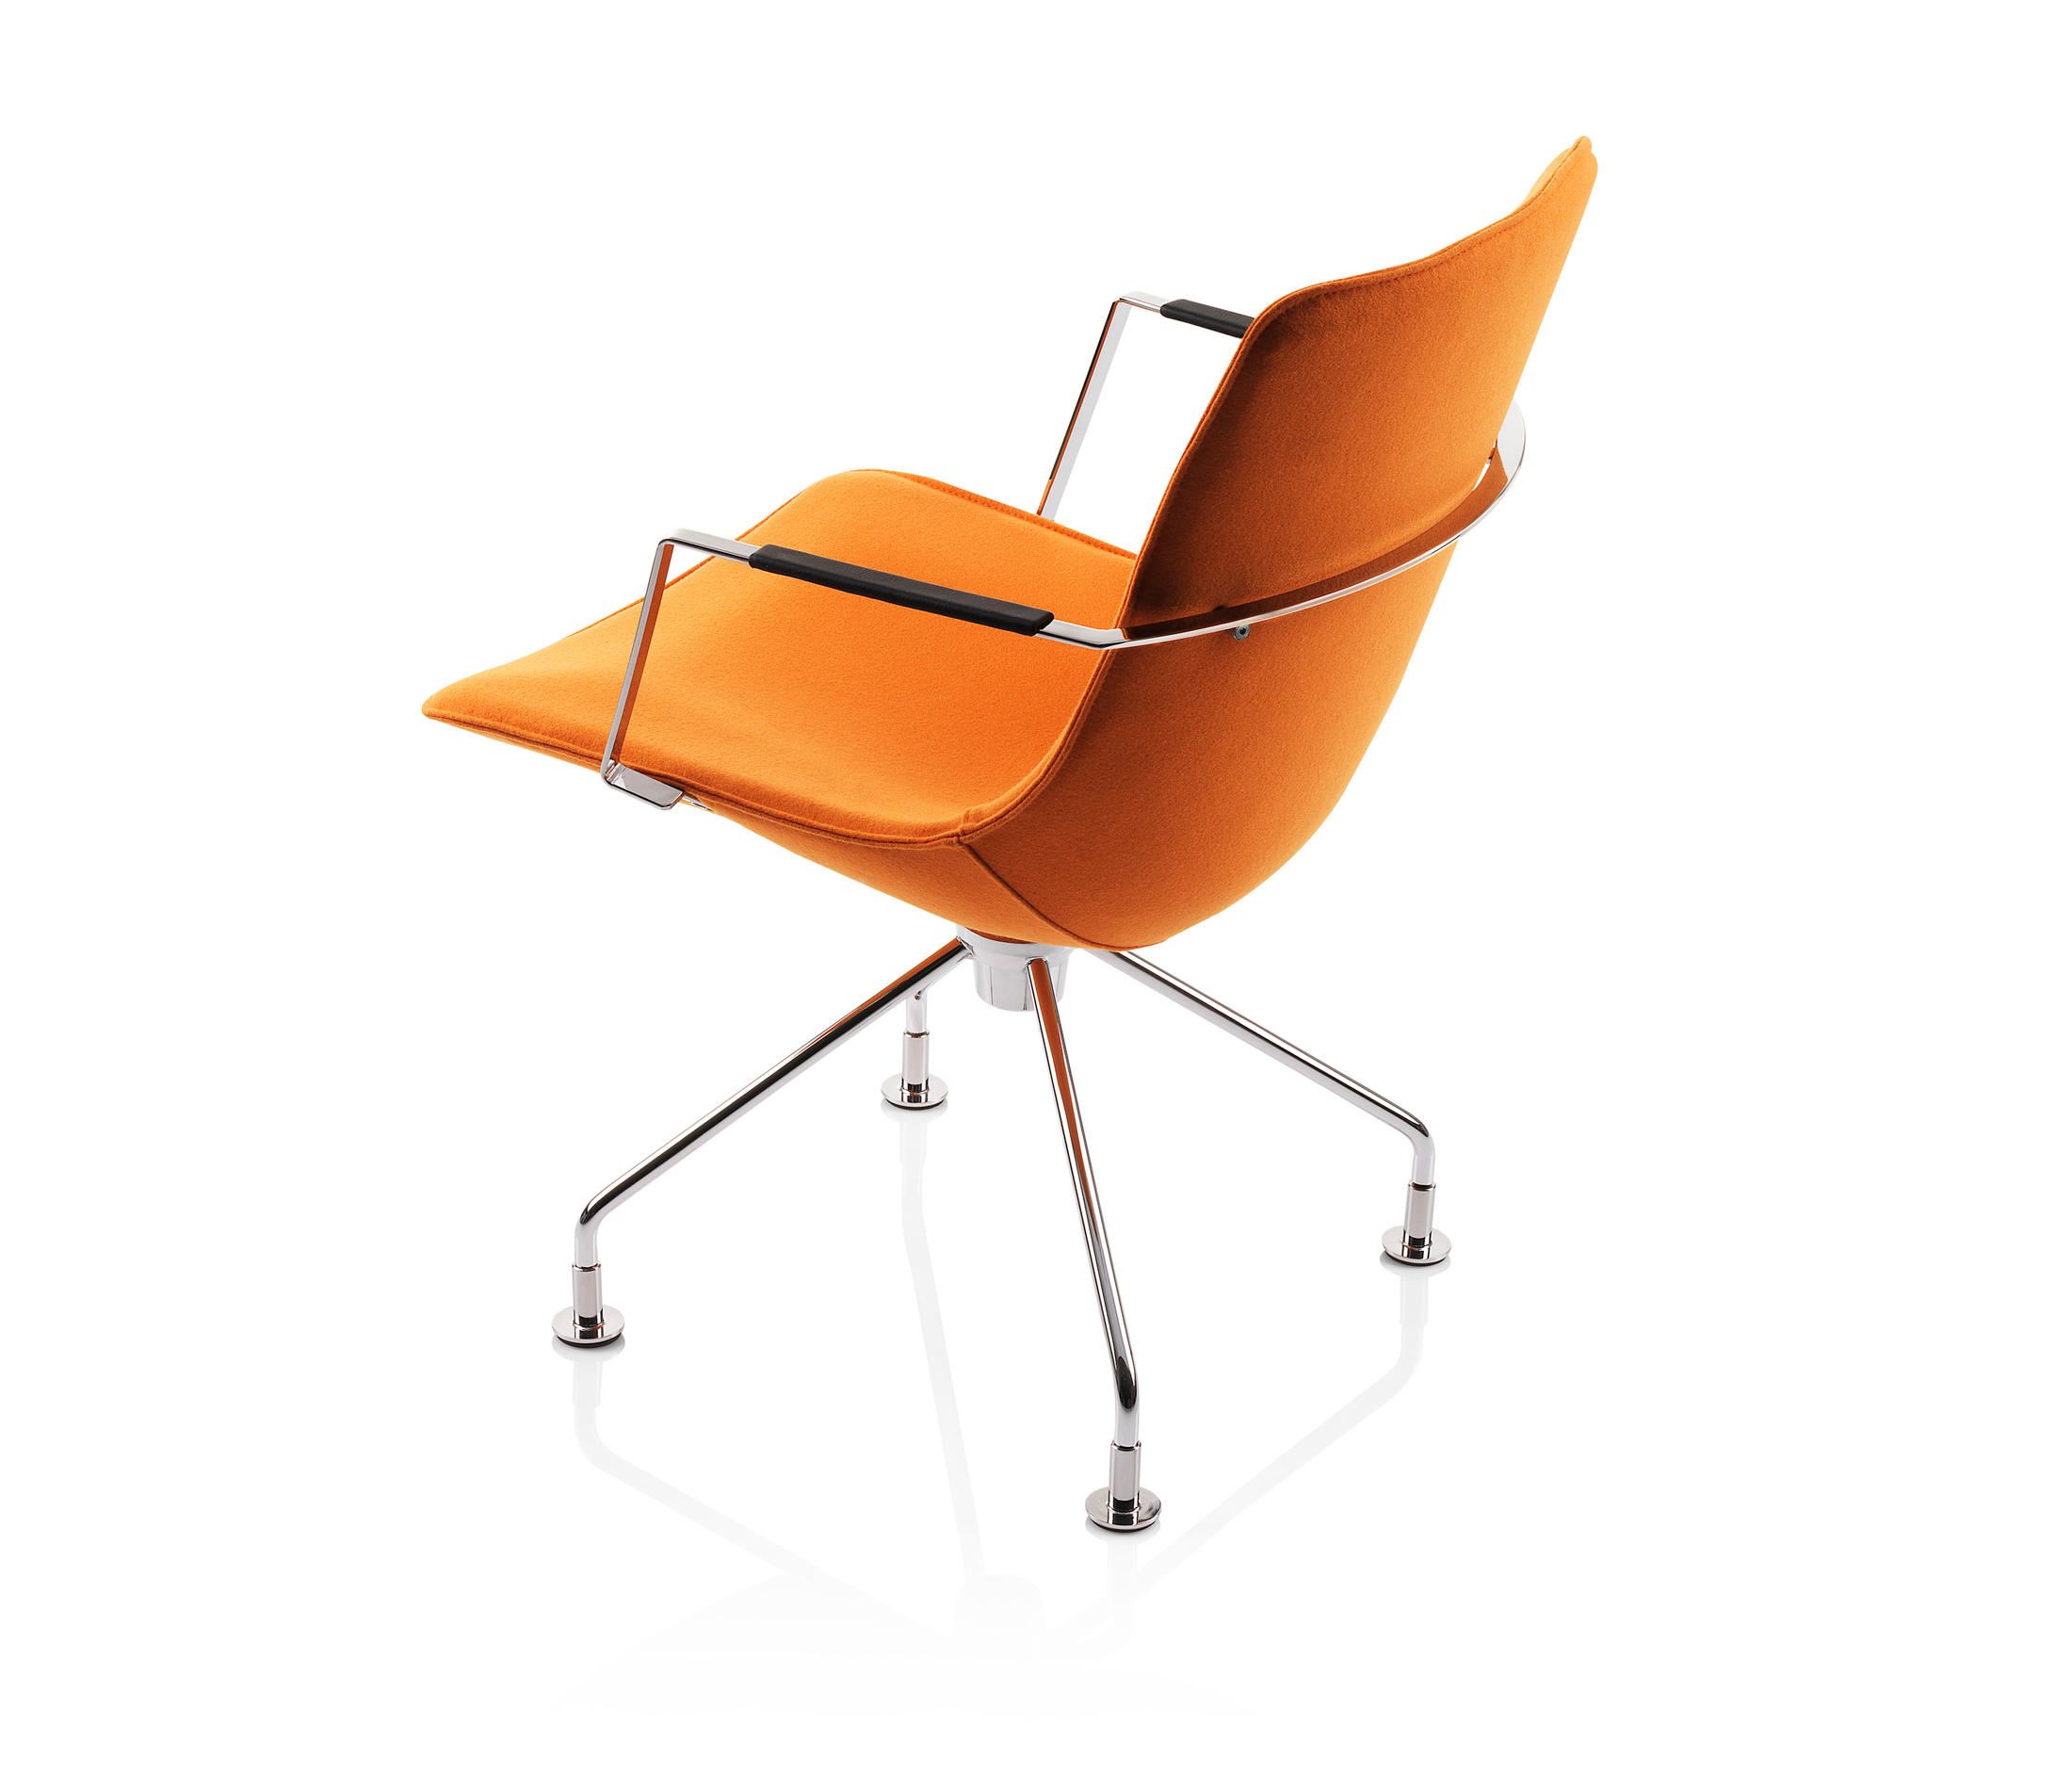 COMET EASY CHAIR Sedie ristorante Lammhults Architonic